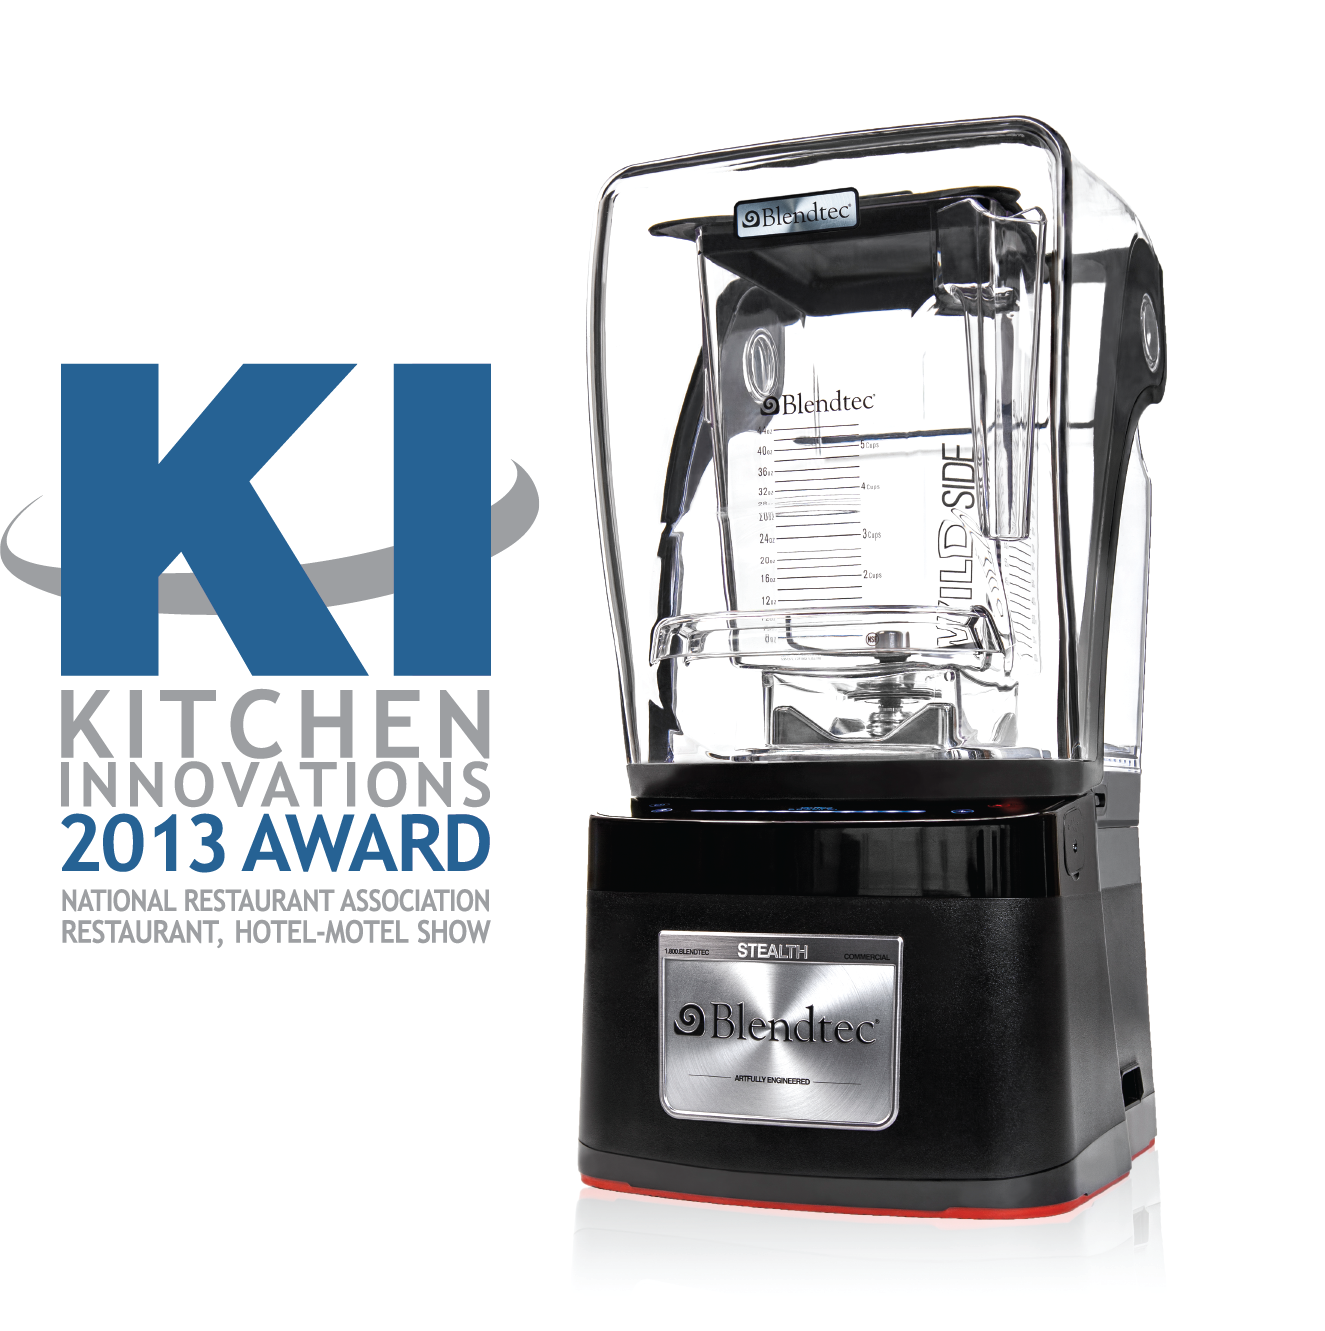 Blendtec Supporting Le Cordon Bleu With Stealth Blenders